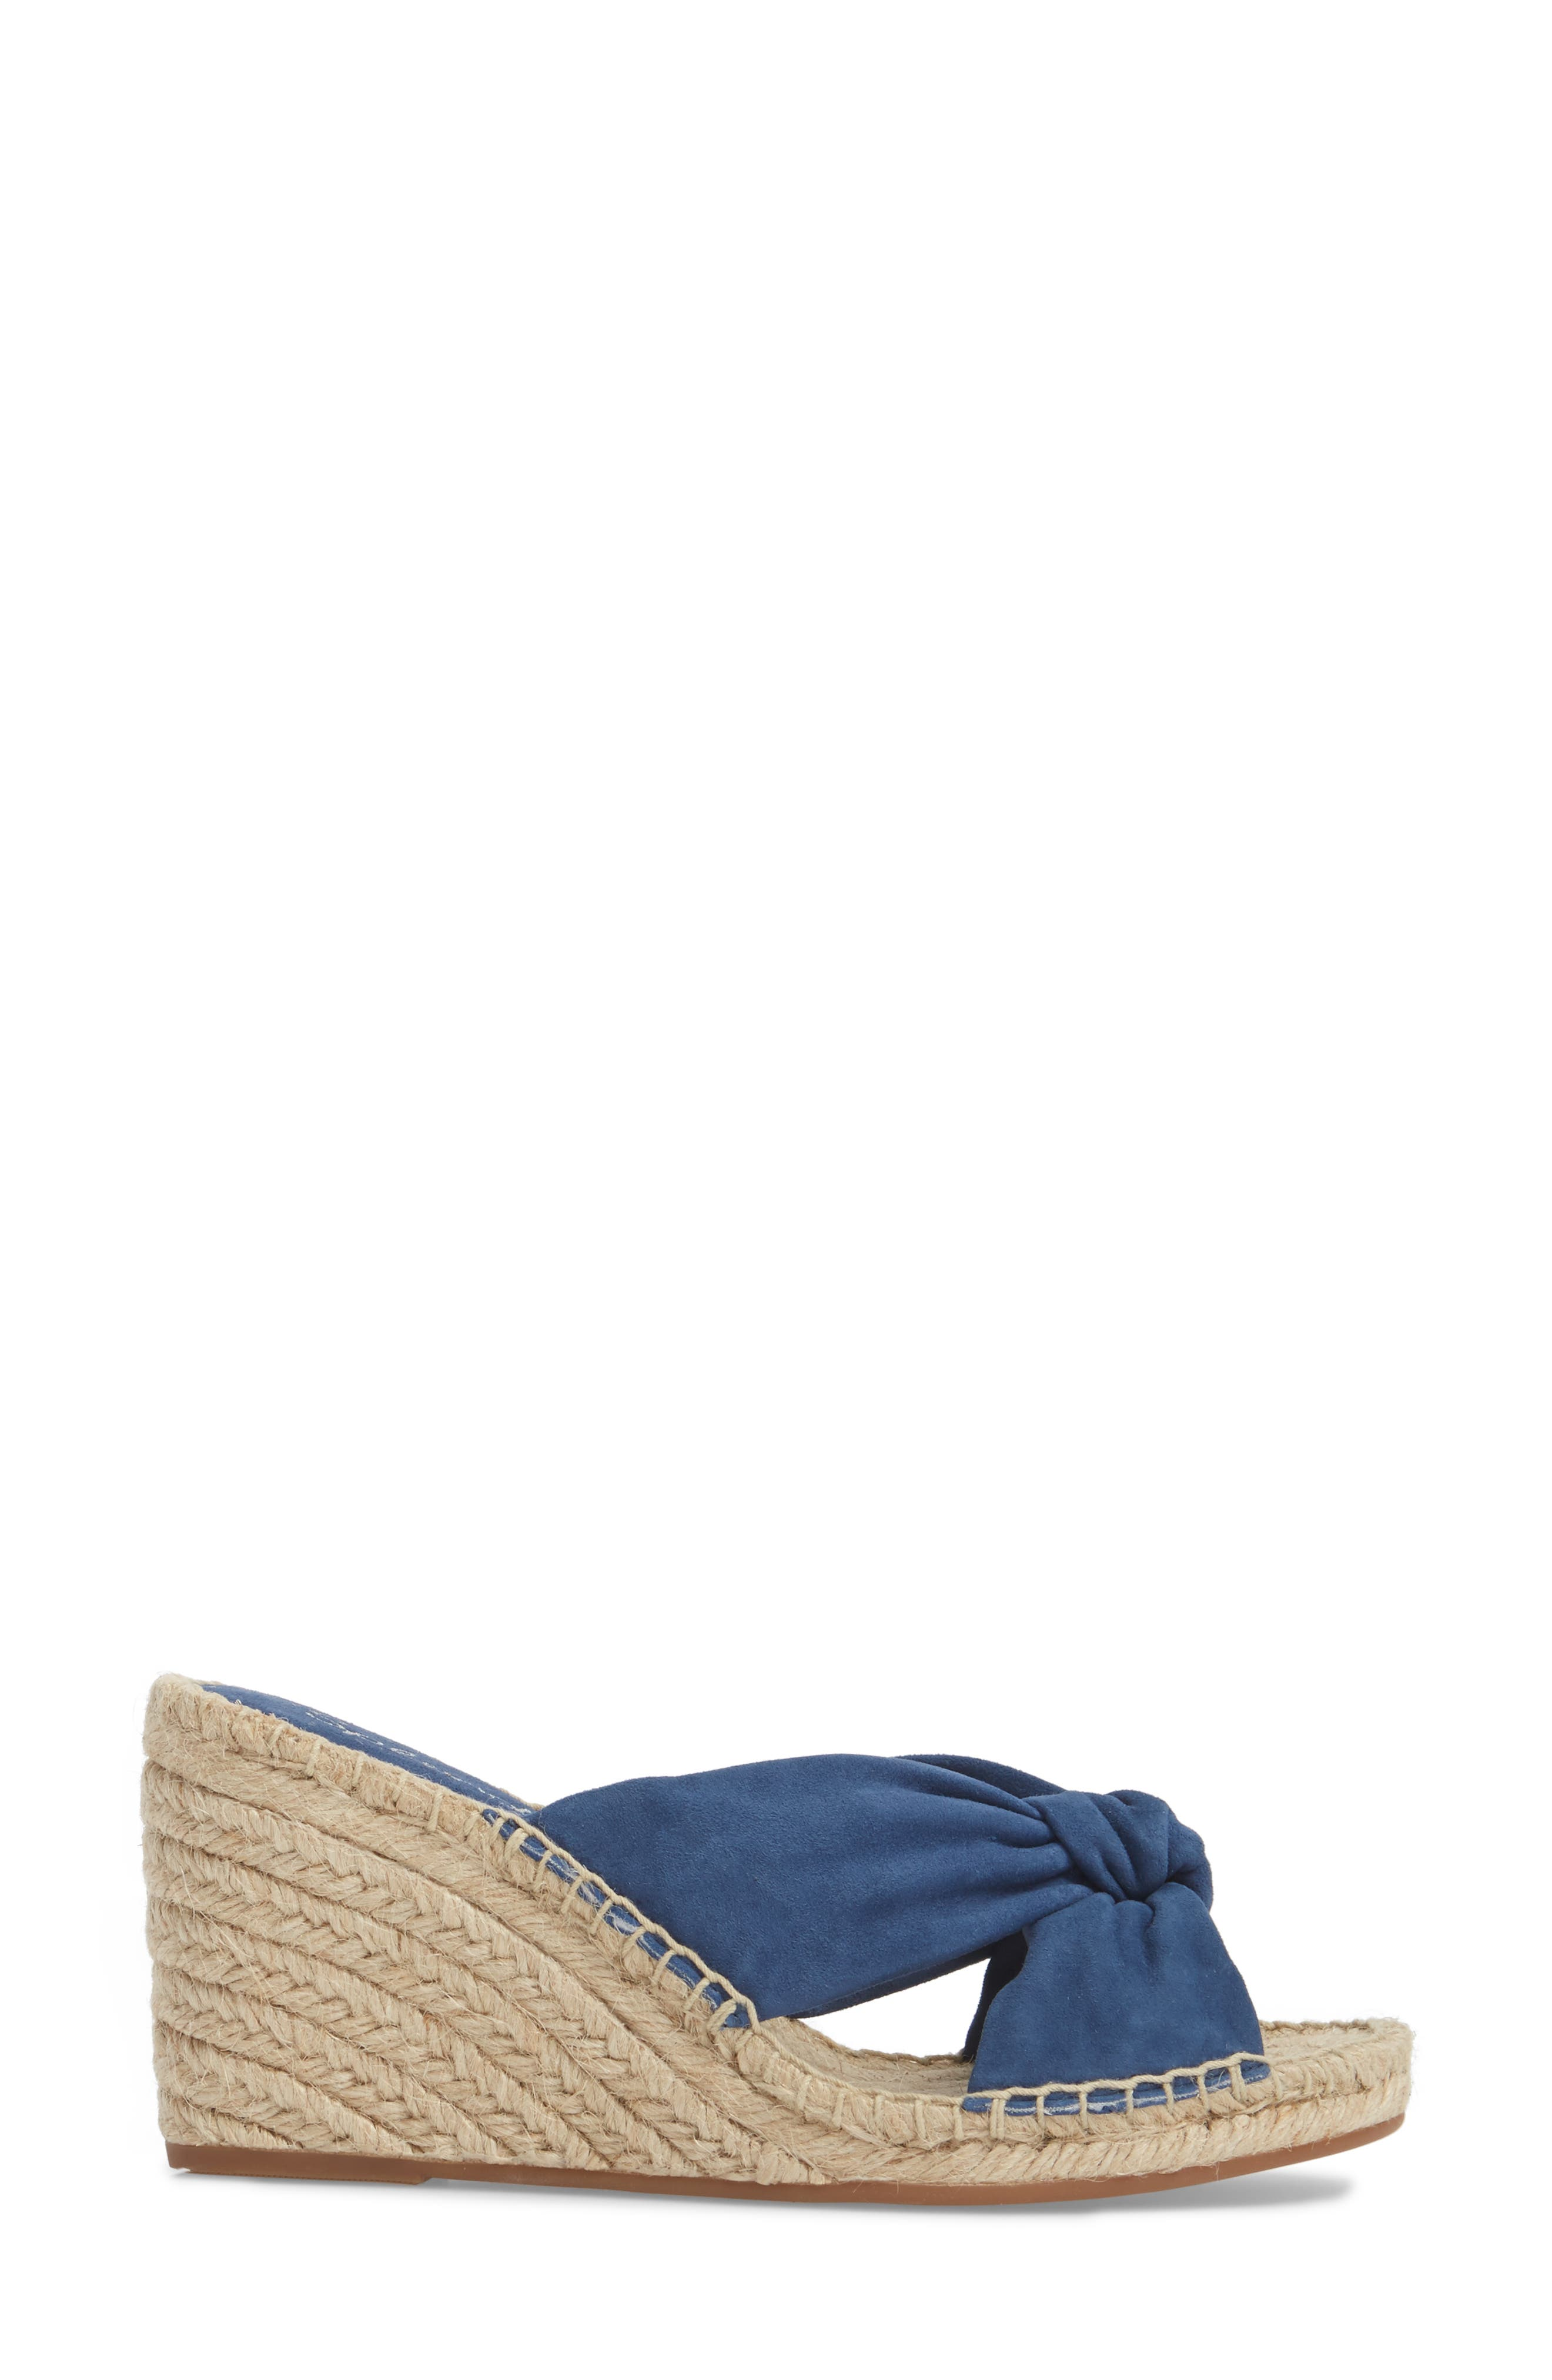 Bautista Knotted Wedge Sandal,                             Alternate thumbnail 3, color,                             Denim Fabric